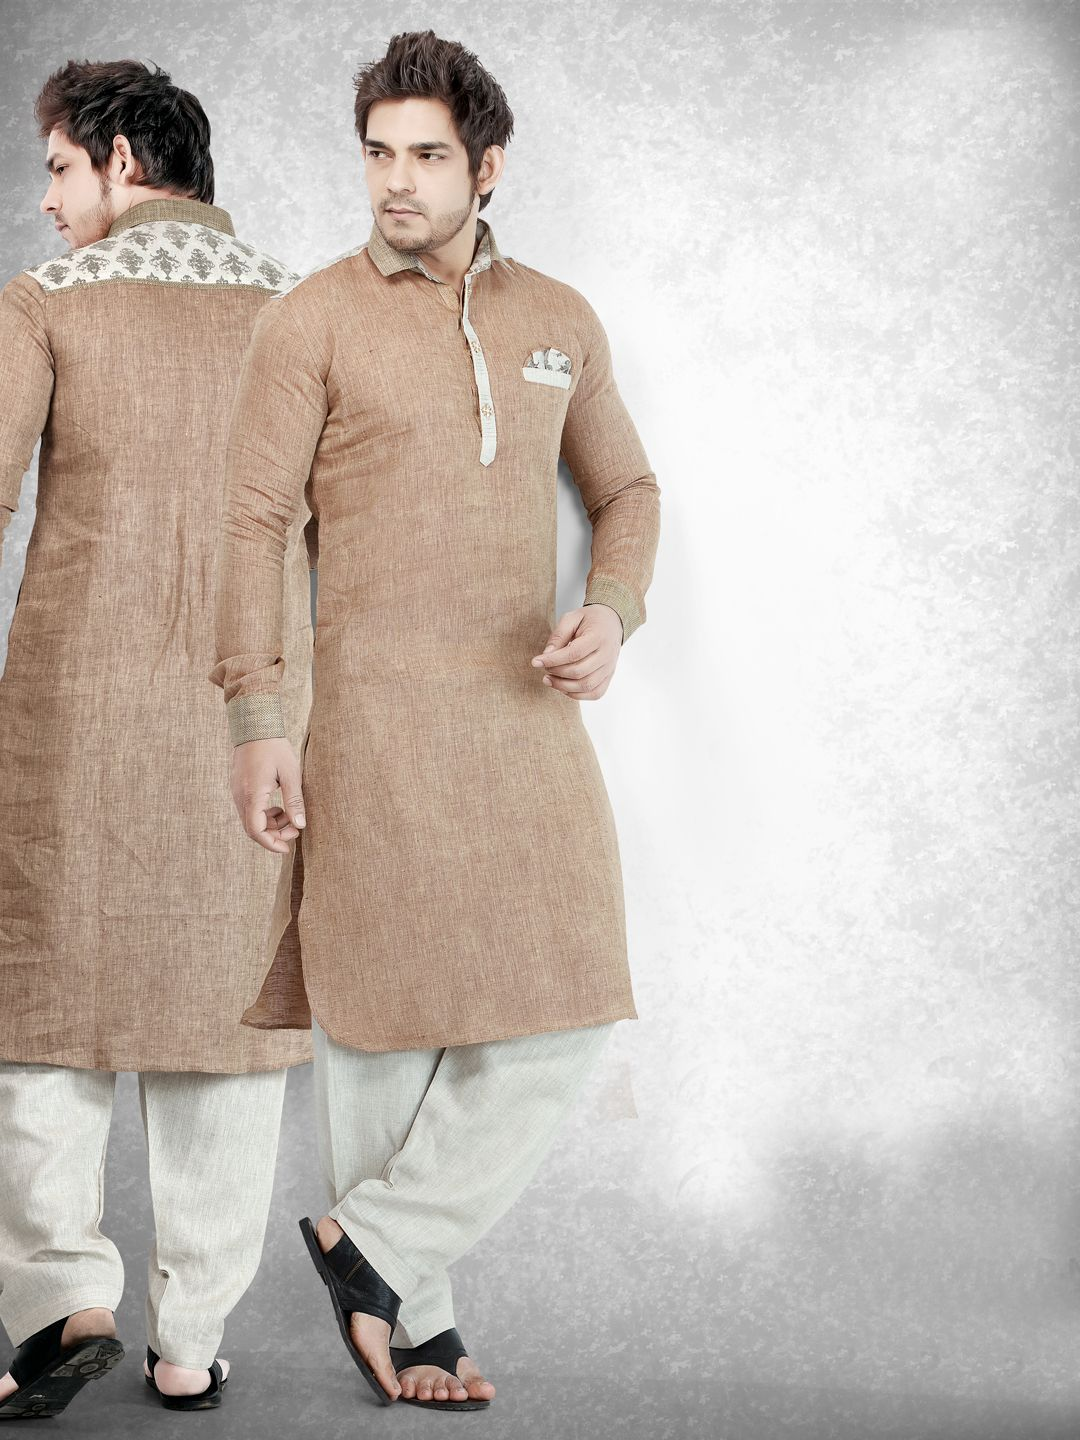 White dress design 2017 - Find This Pin And More On Buy Men Pathani Suit From G3 Fashion Shop Online Latest Fashion 2017 Designer Look Mens Pathani Suits